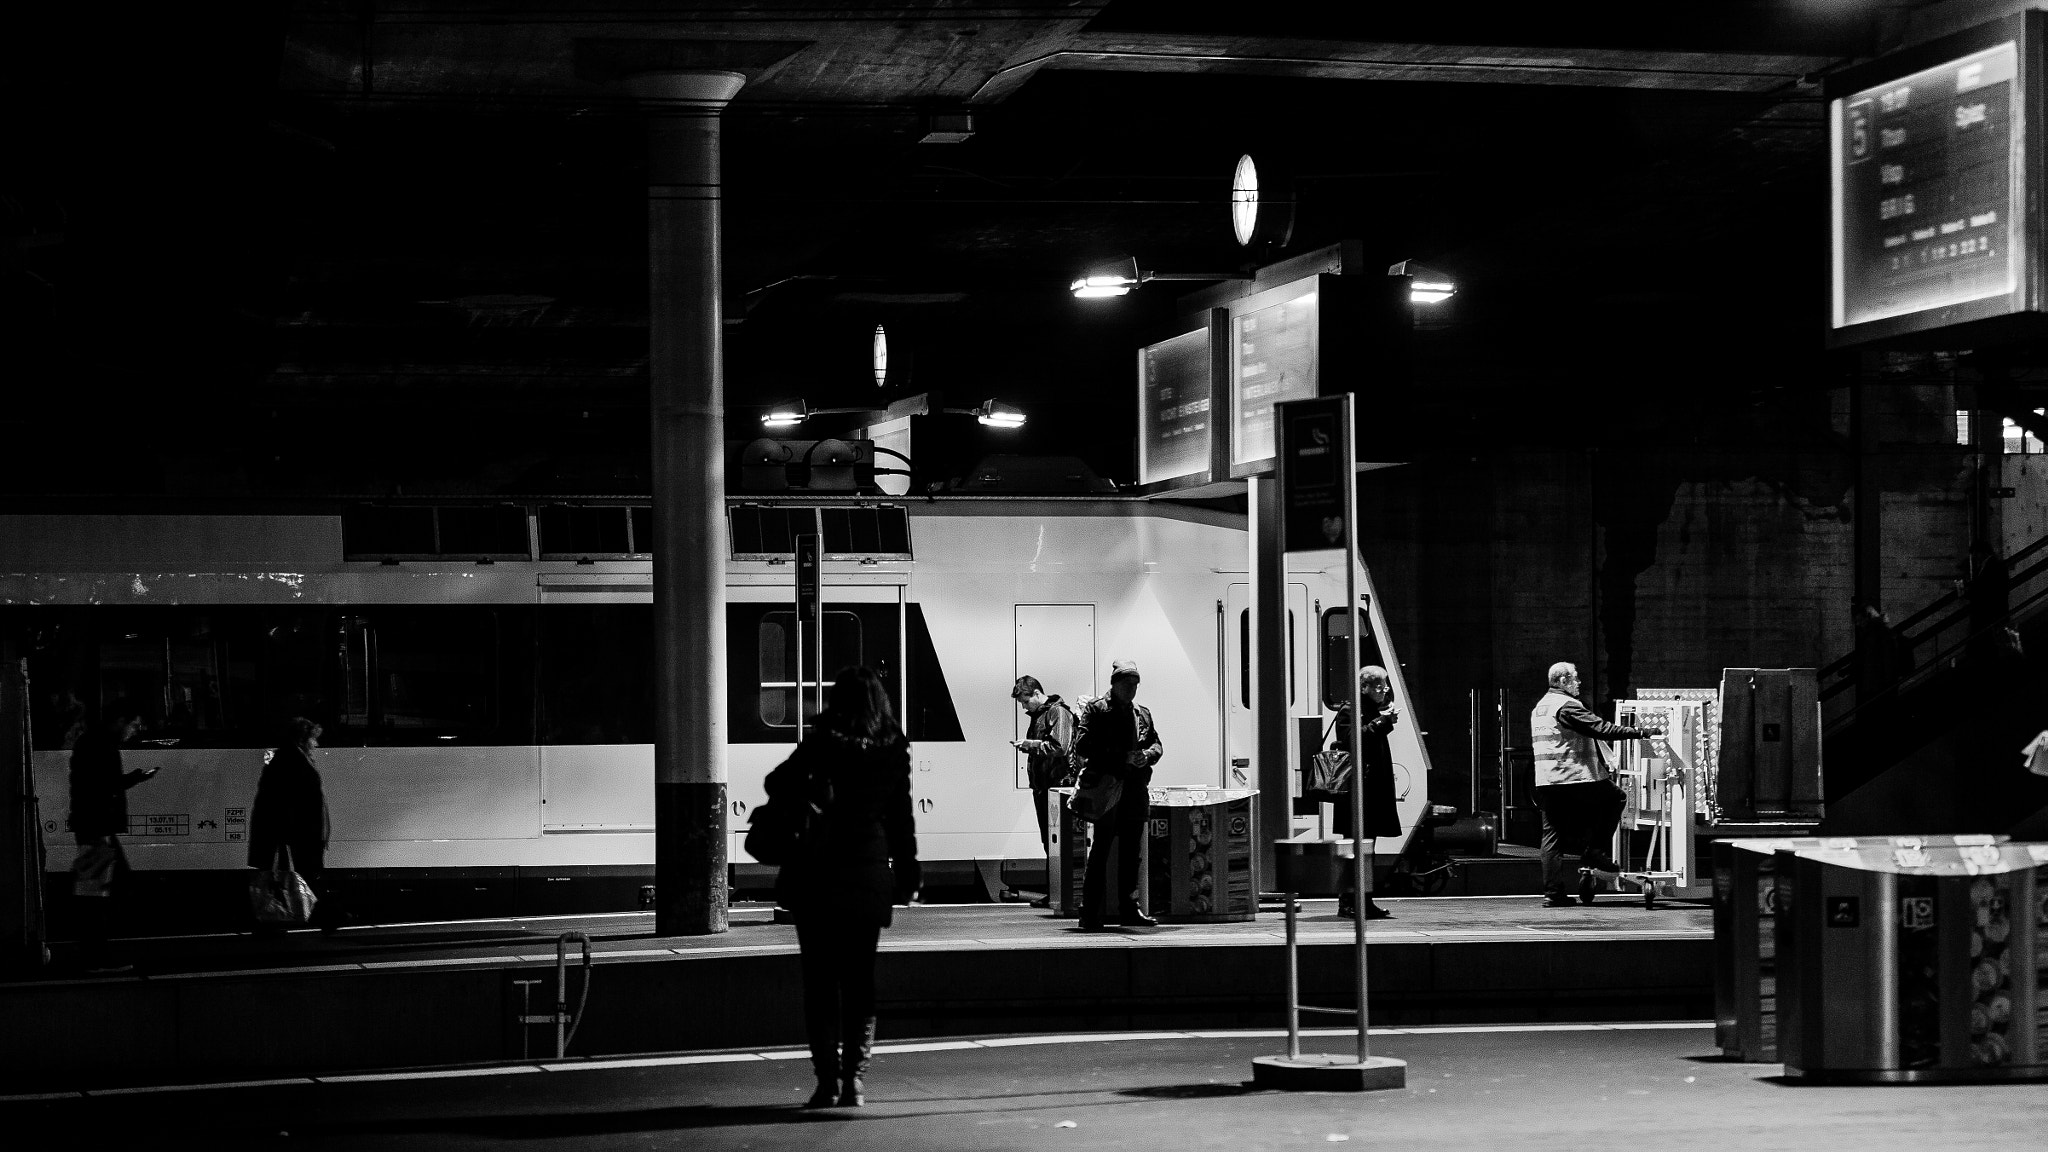 Photograph A la gare by Xavier   on 500px